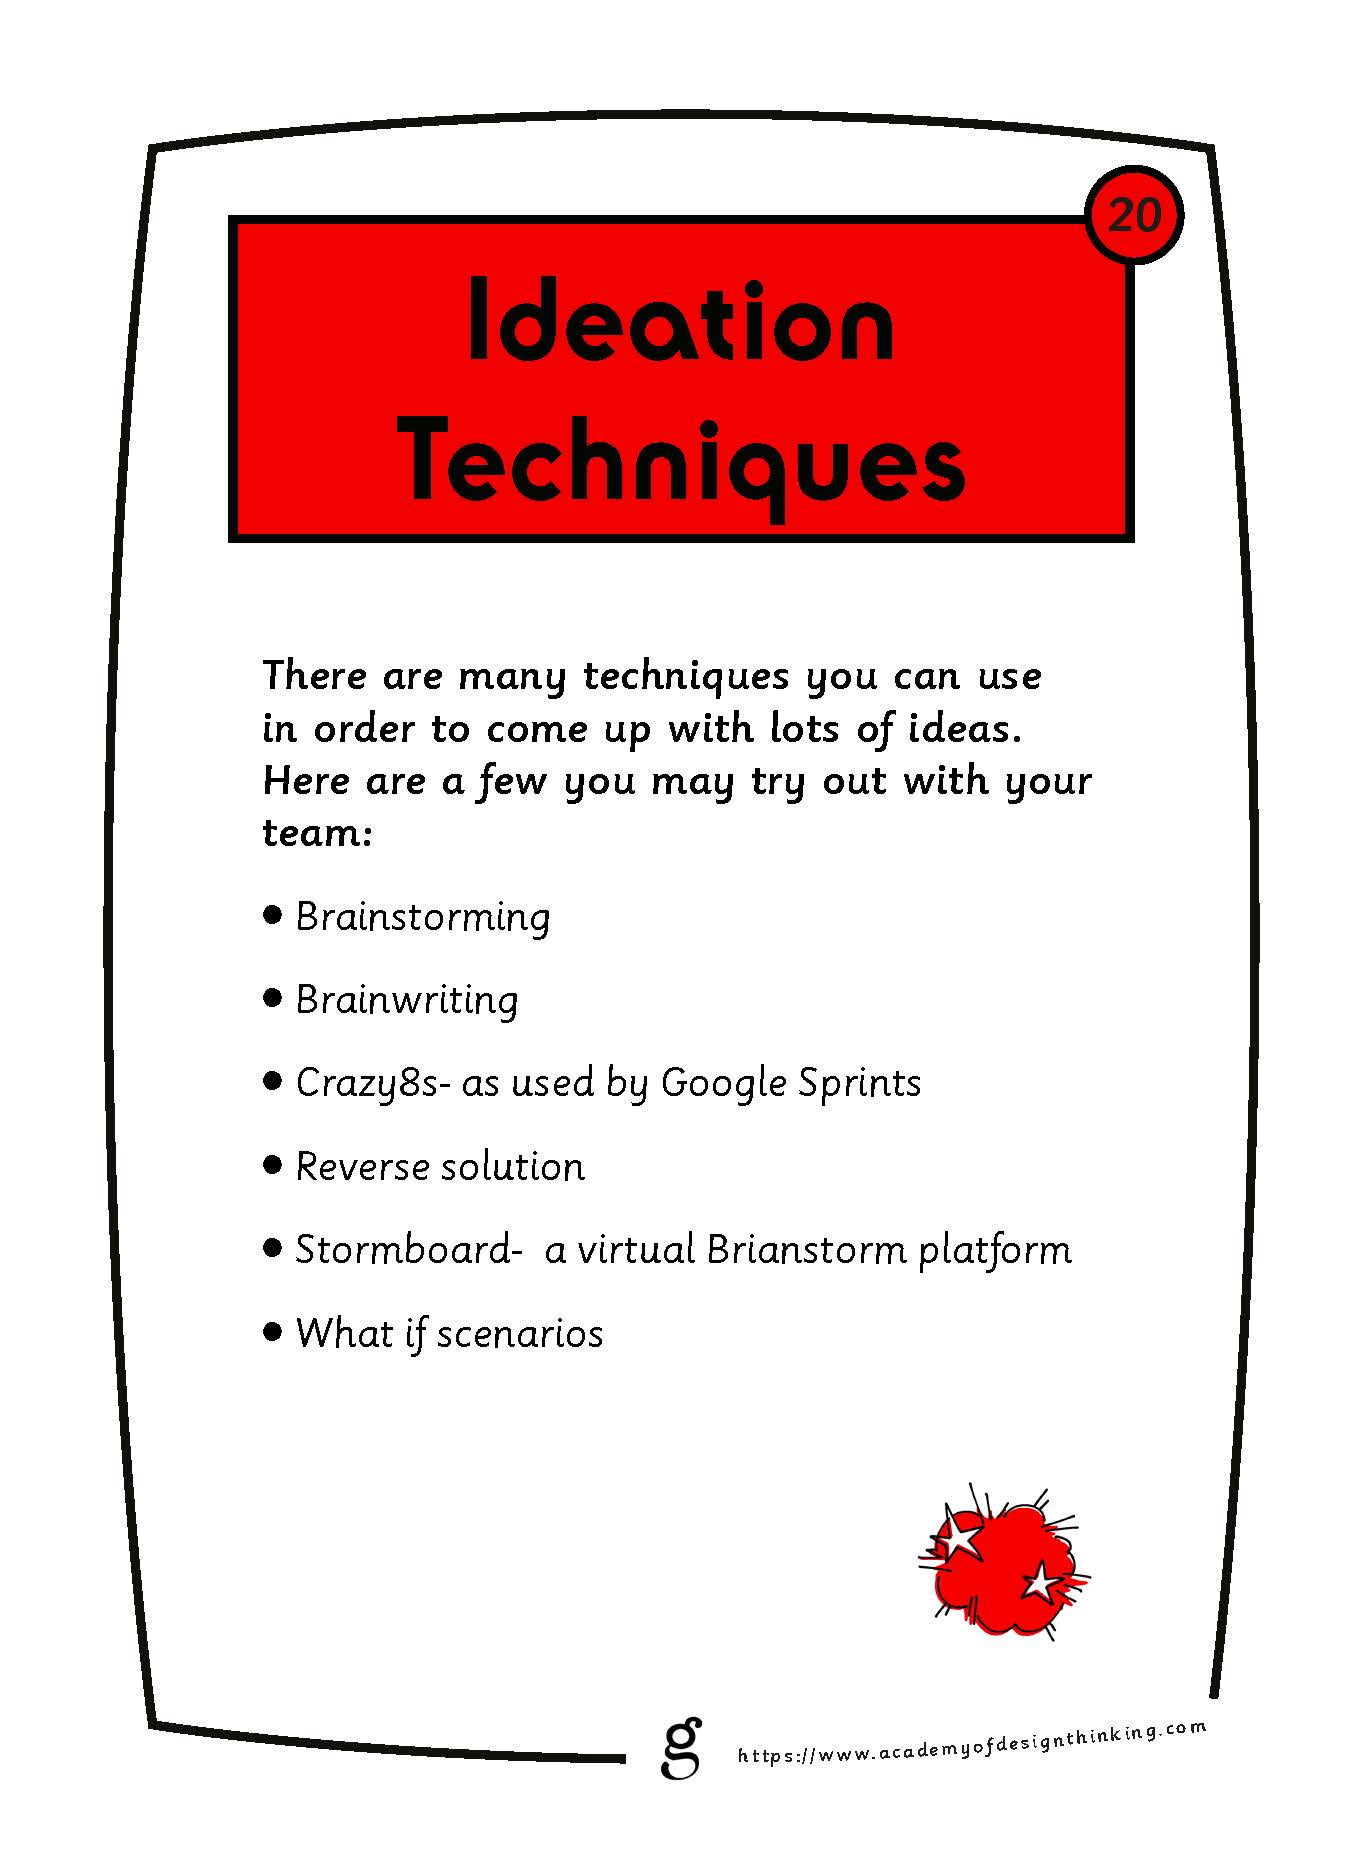 Ideation Techniques